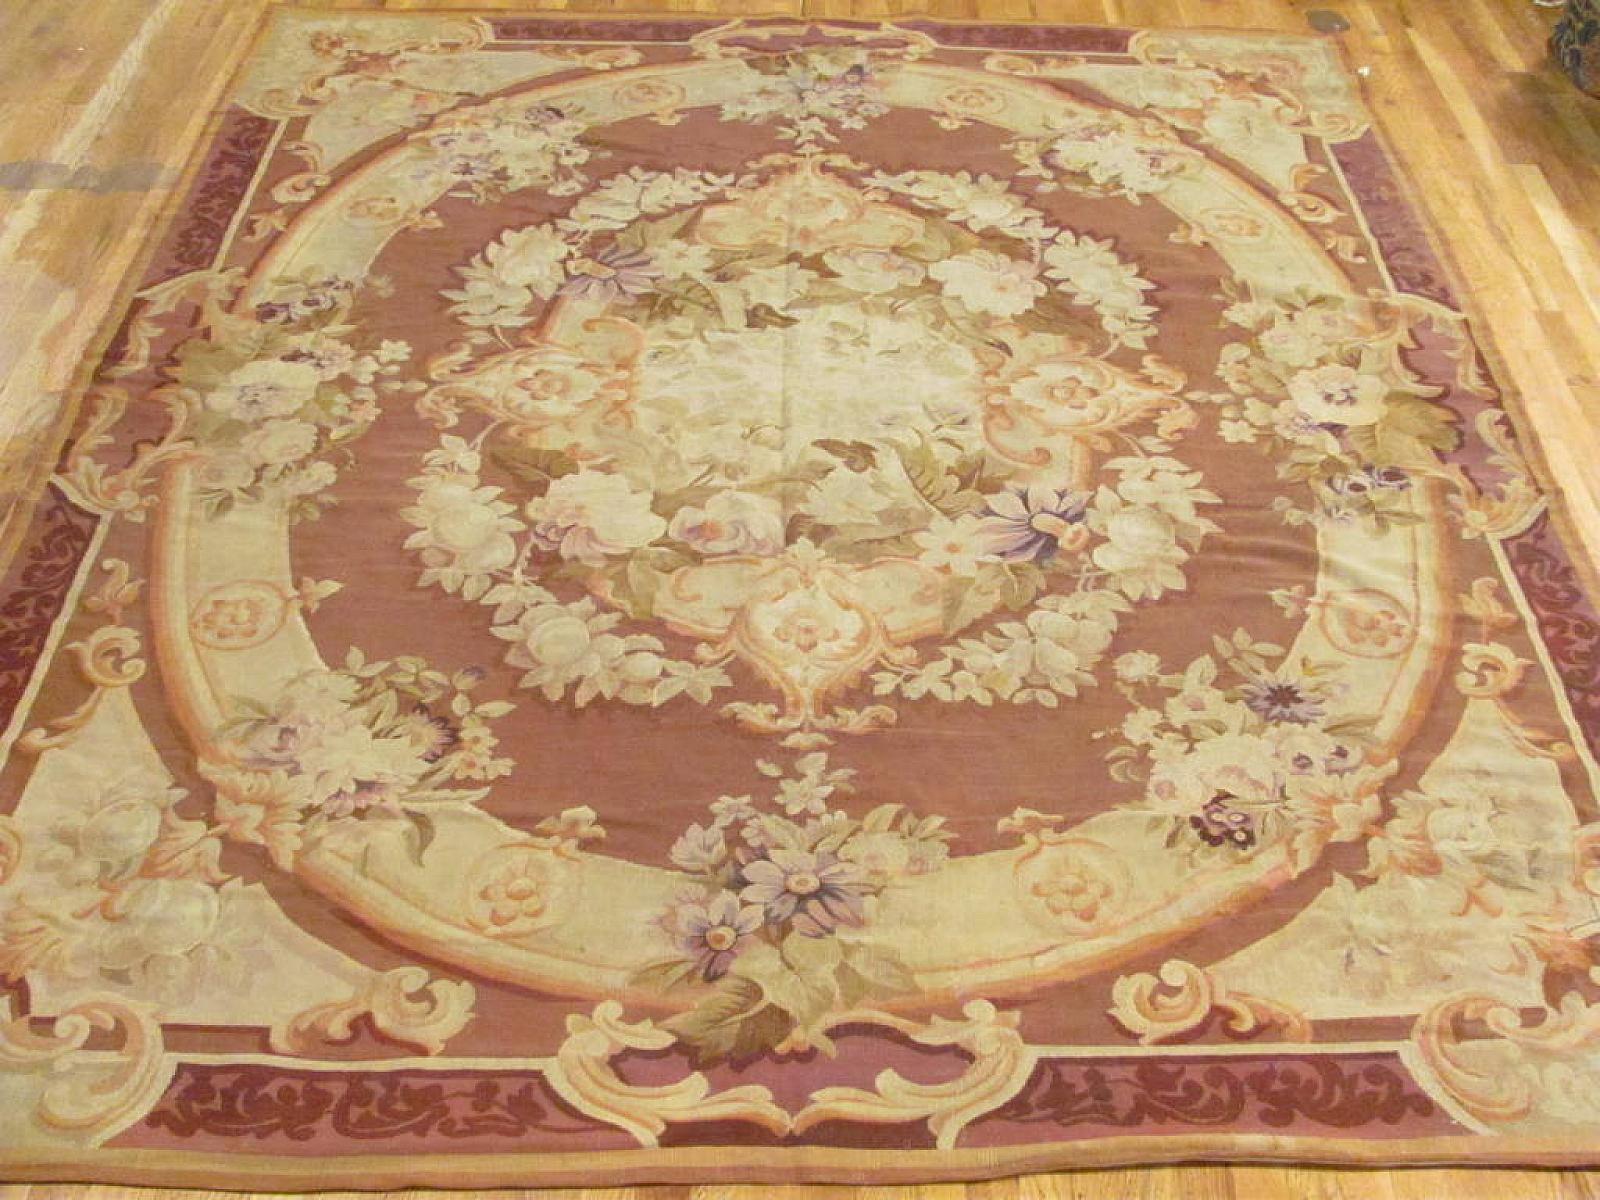 Rug Information - Avriam Aziz Antique and Decorative Rugs